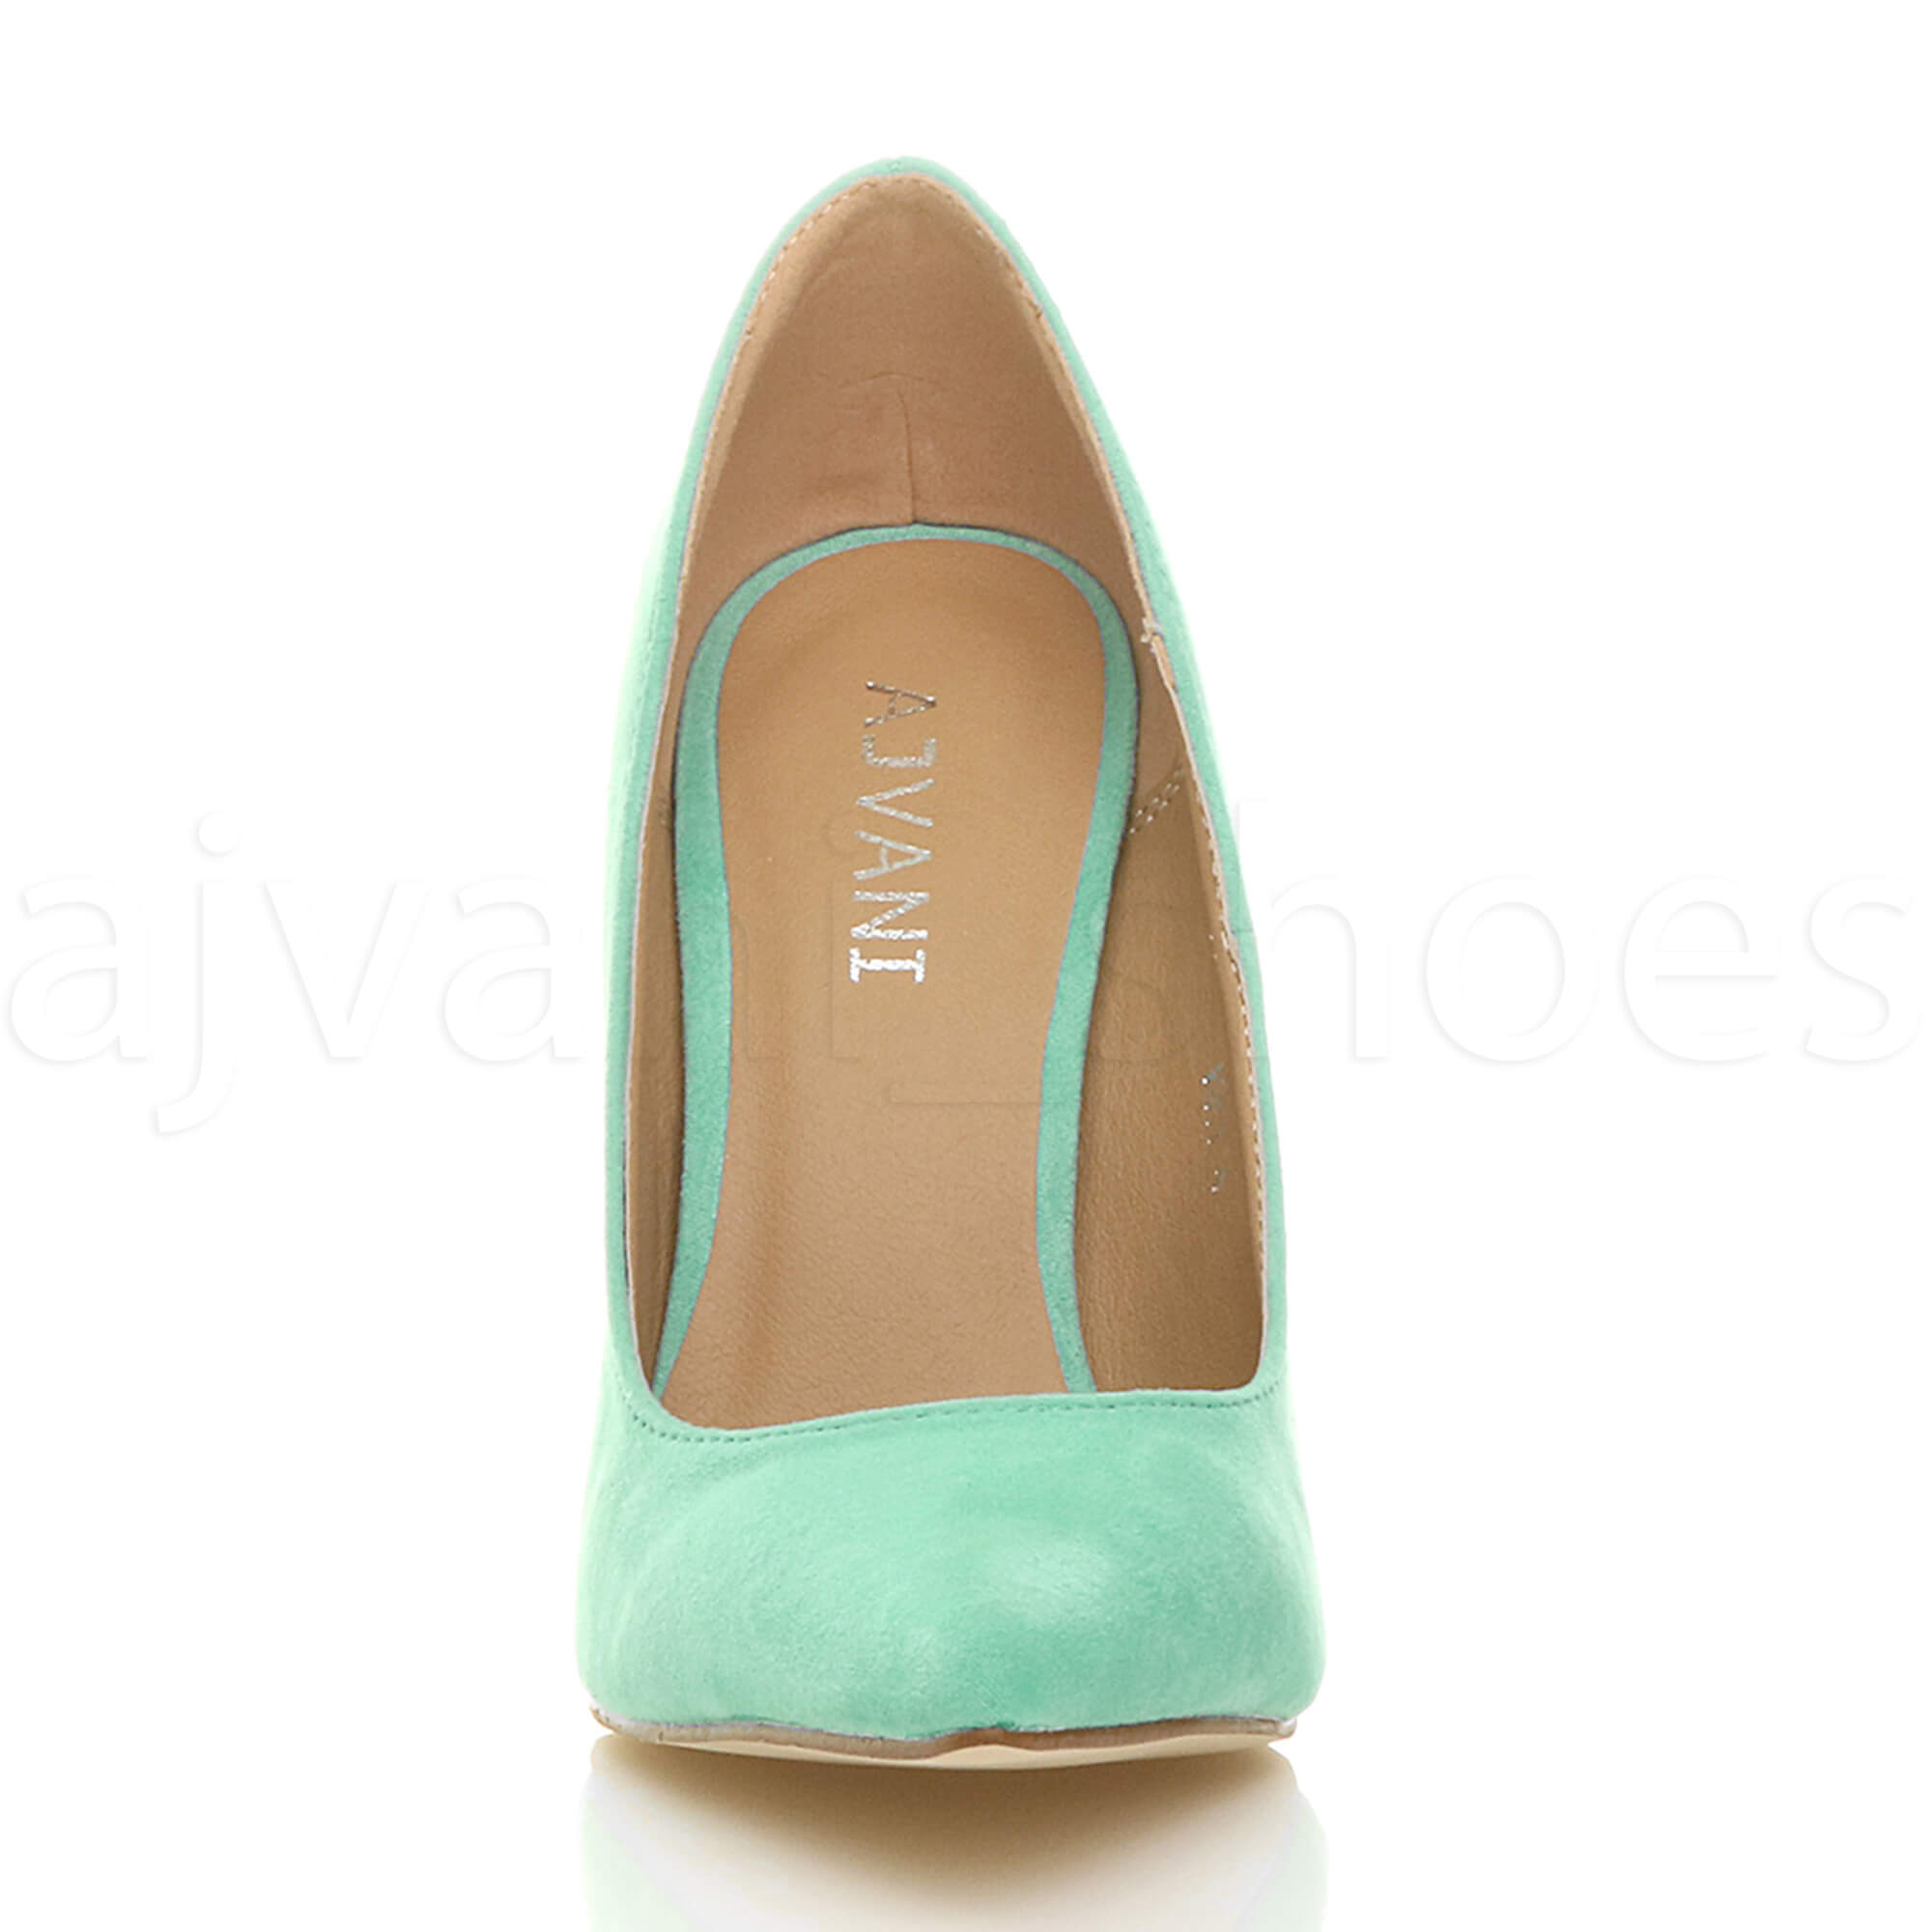 WOMENS-LADIES-HIGH-HEEL-POINTED-CONTRAST-COURT-SMART-PARTY-WORK-SHOES-PUMPS-SIZE thumbnail 149